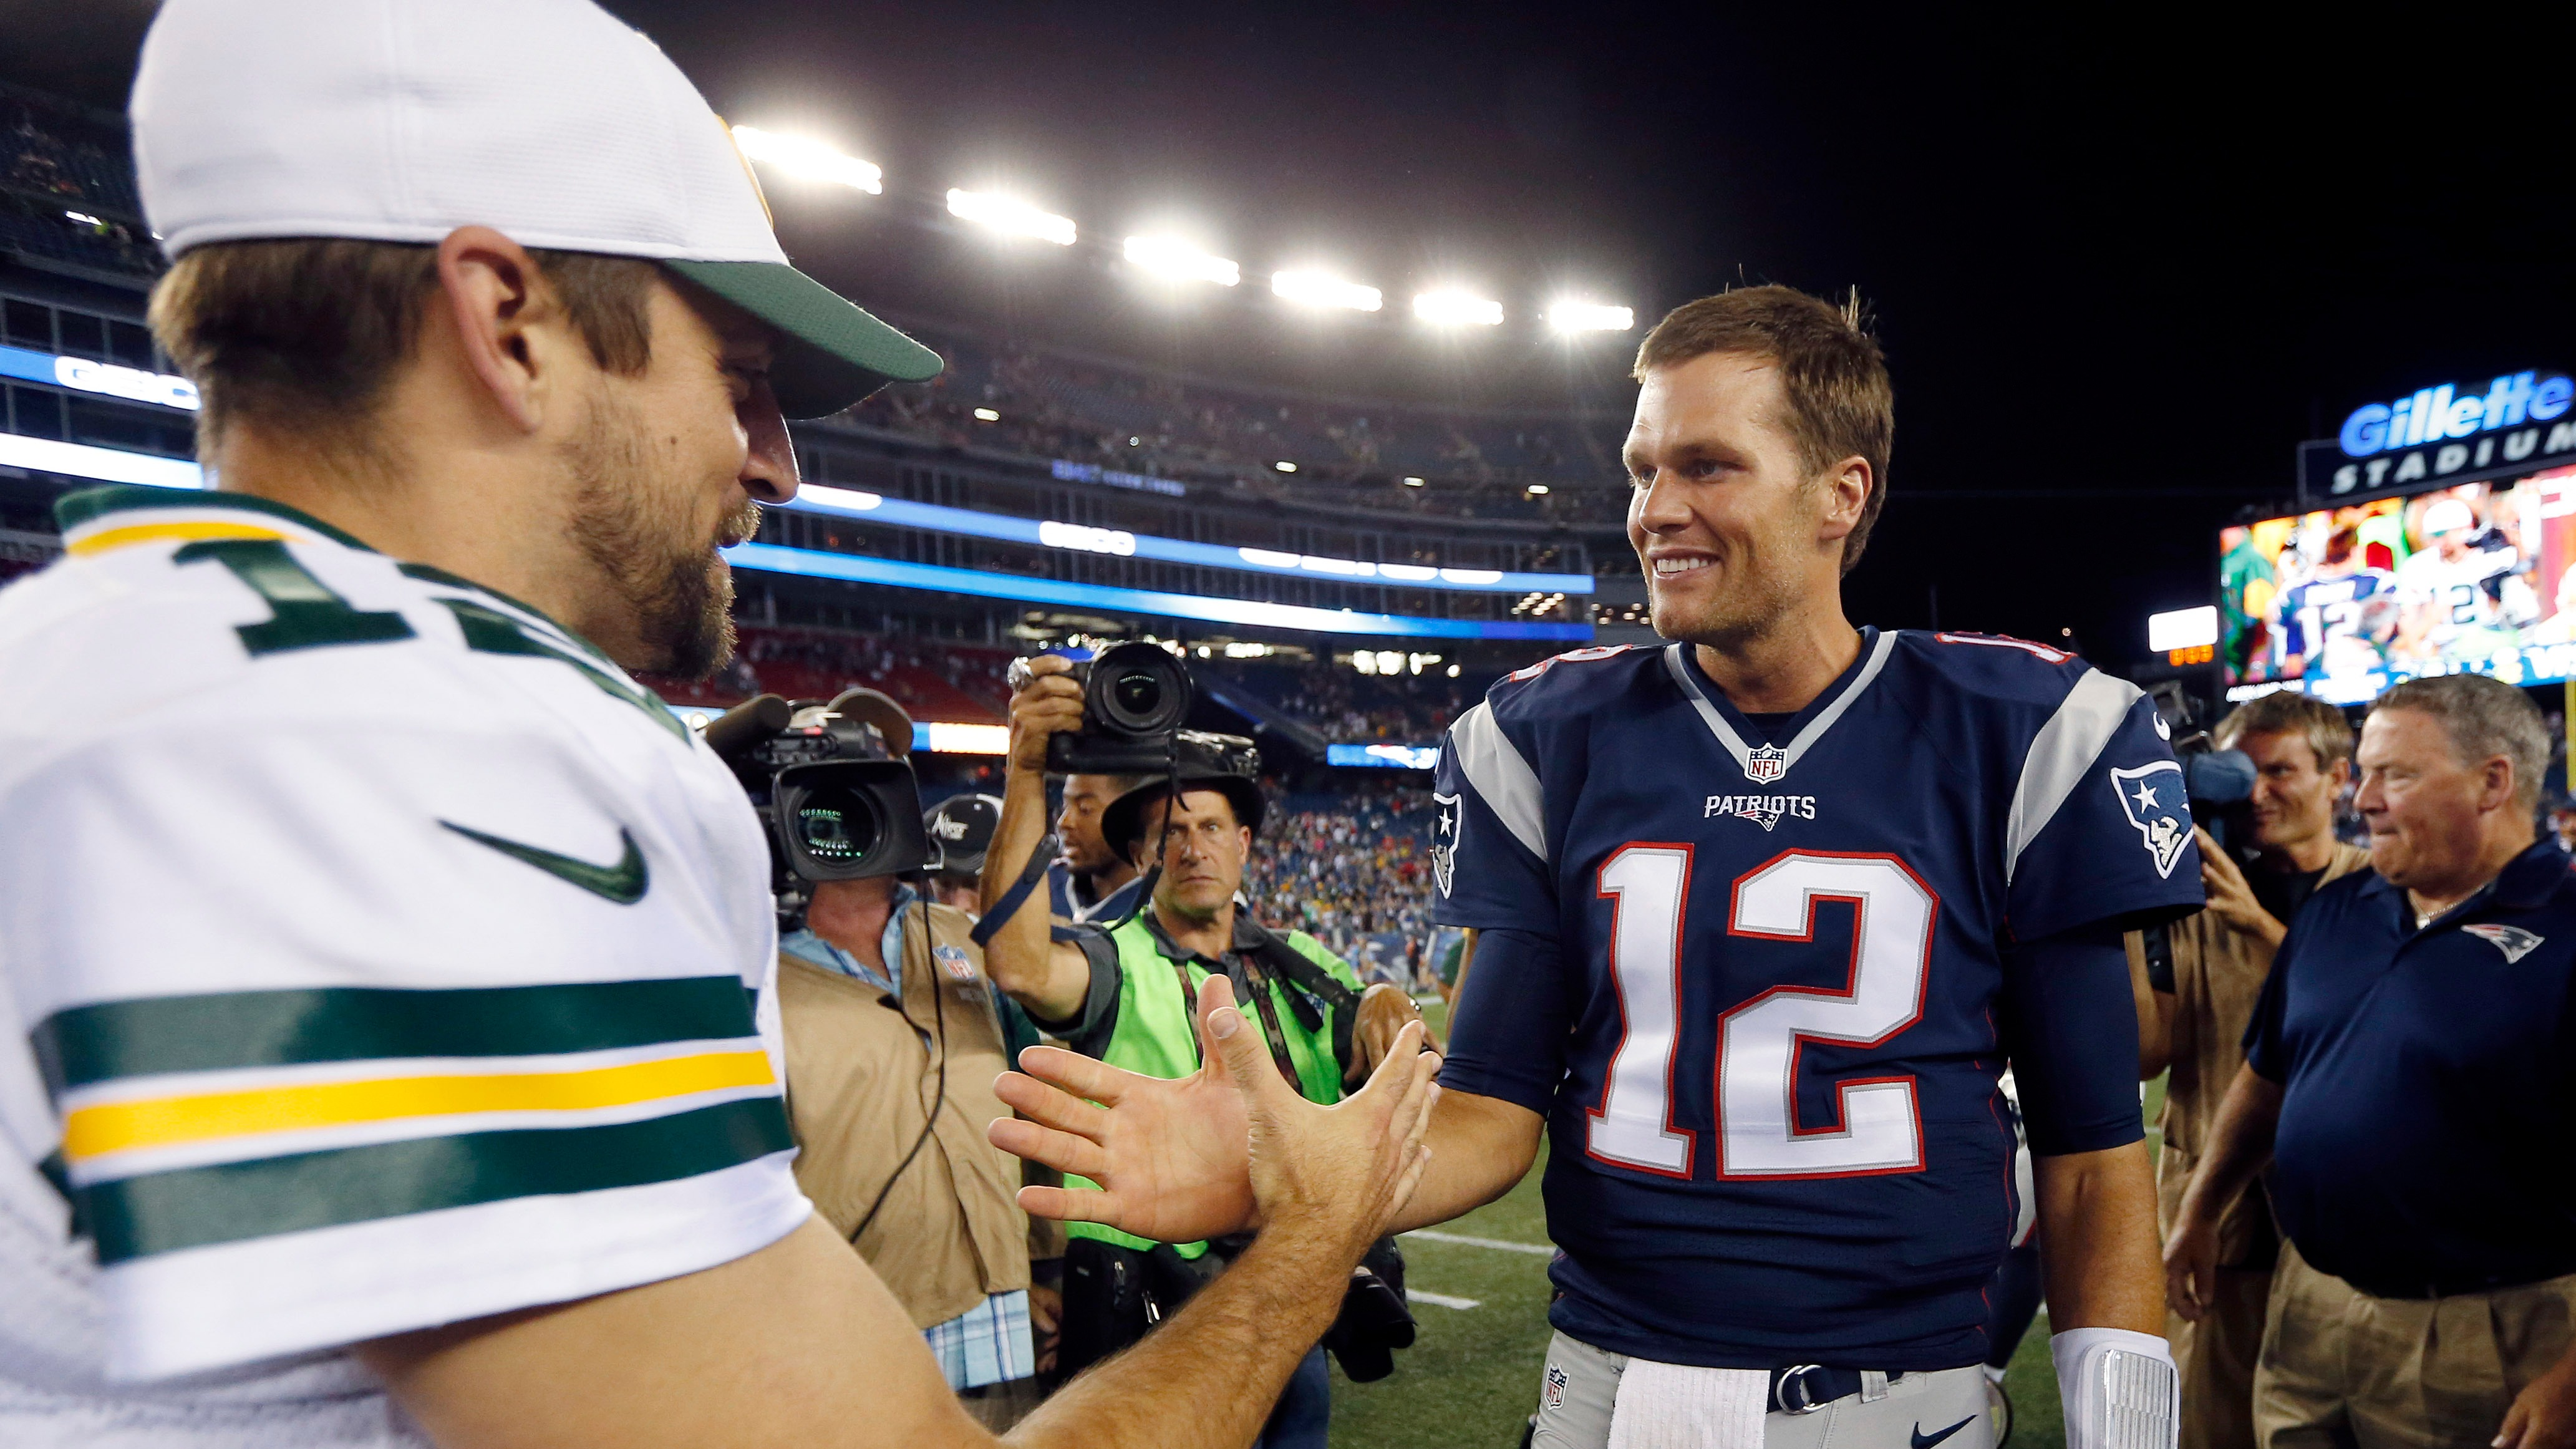 Patriots packers betting line 50 cent new show on bet